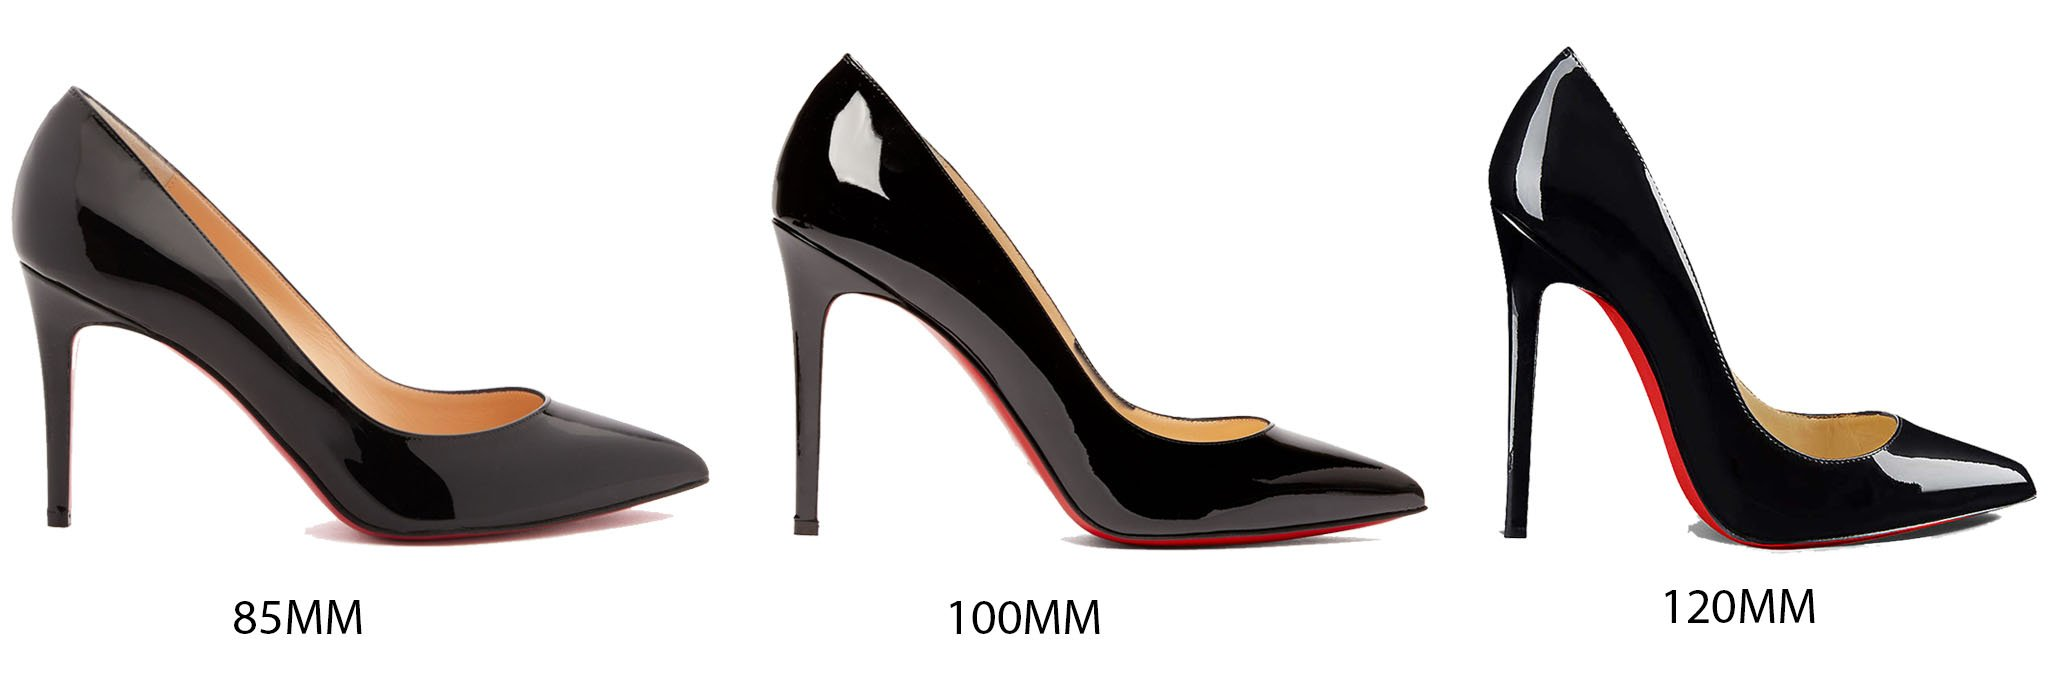 The Pigalle comes in different heel heights, from 85mm to 120mm